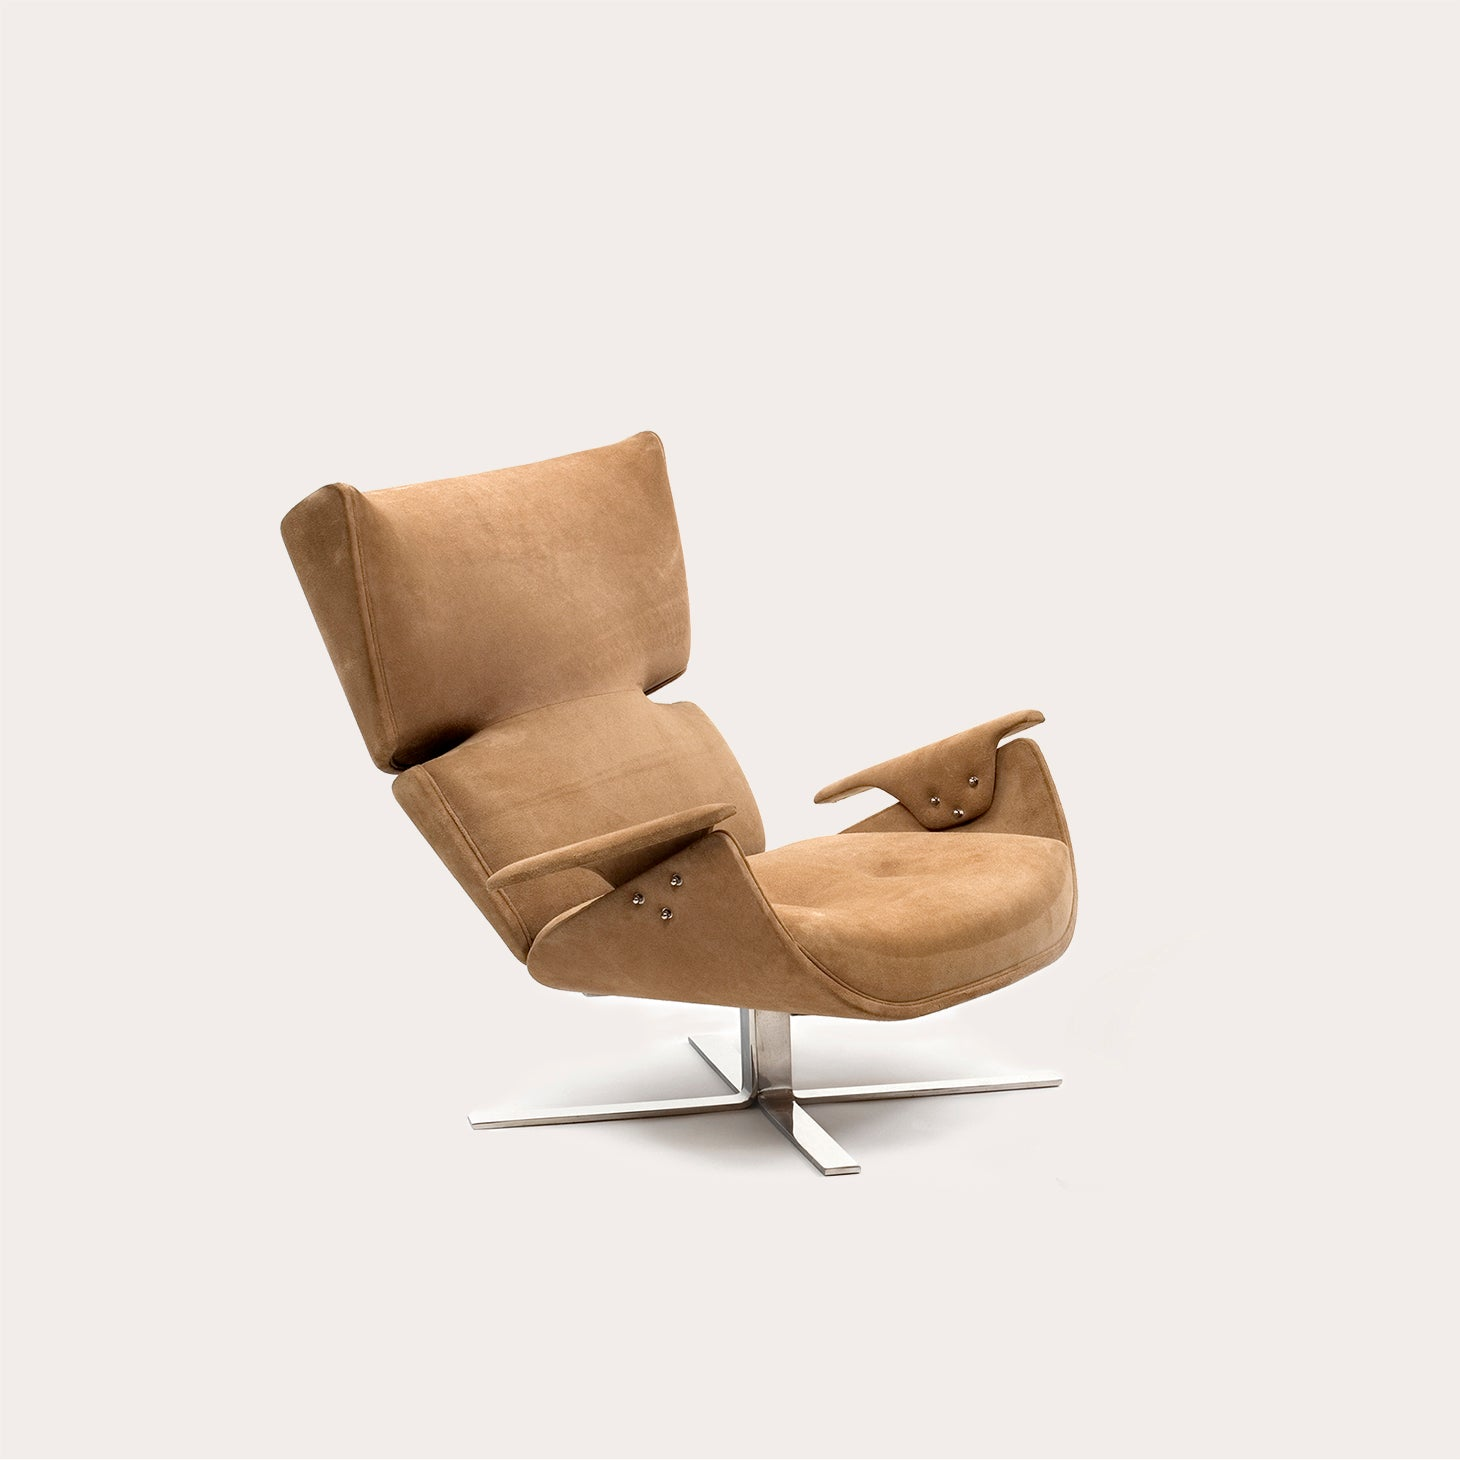 Paulistana Armchair Seating Jorge Zalszupin Designer Furniture Sku: 003-120-10031